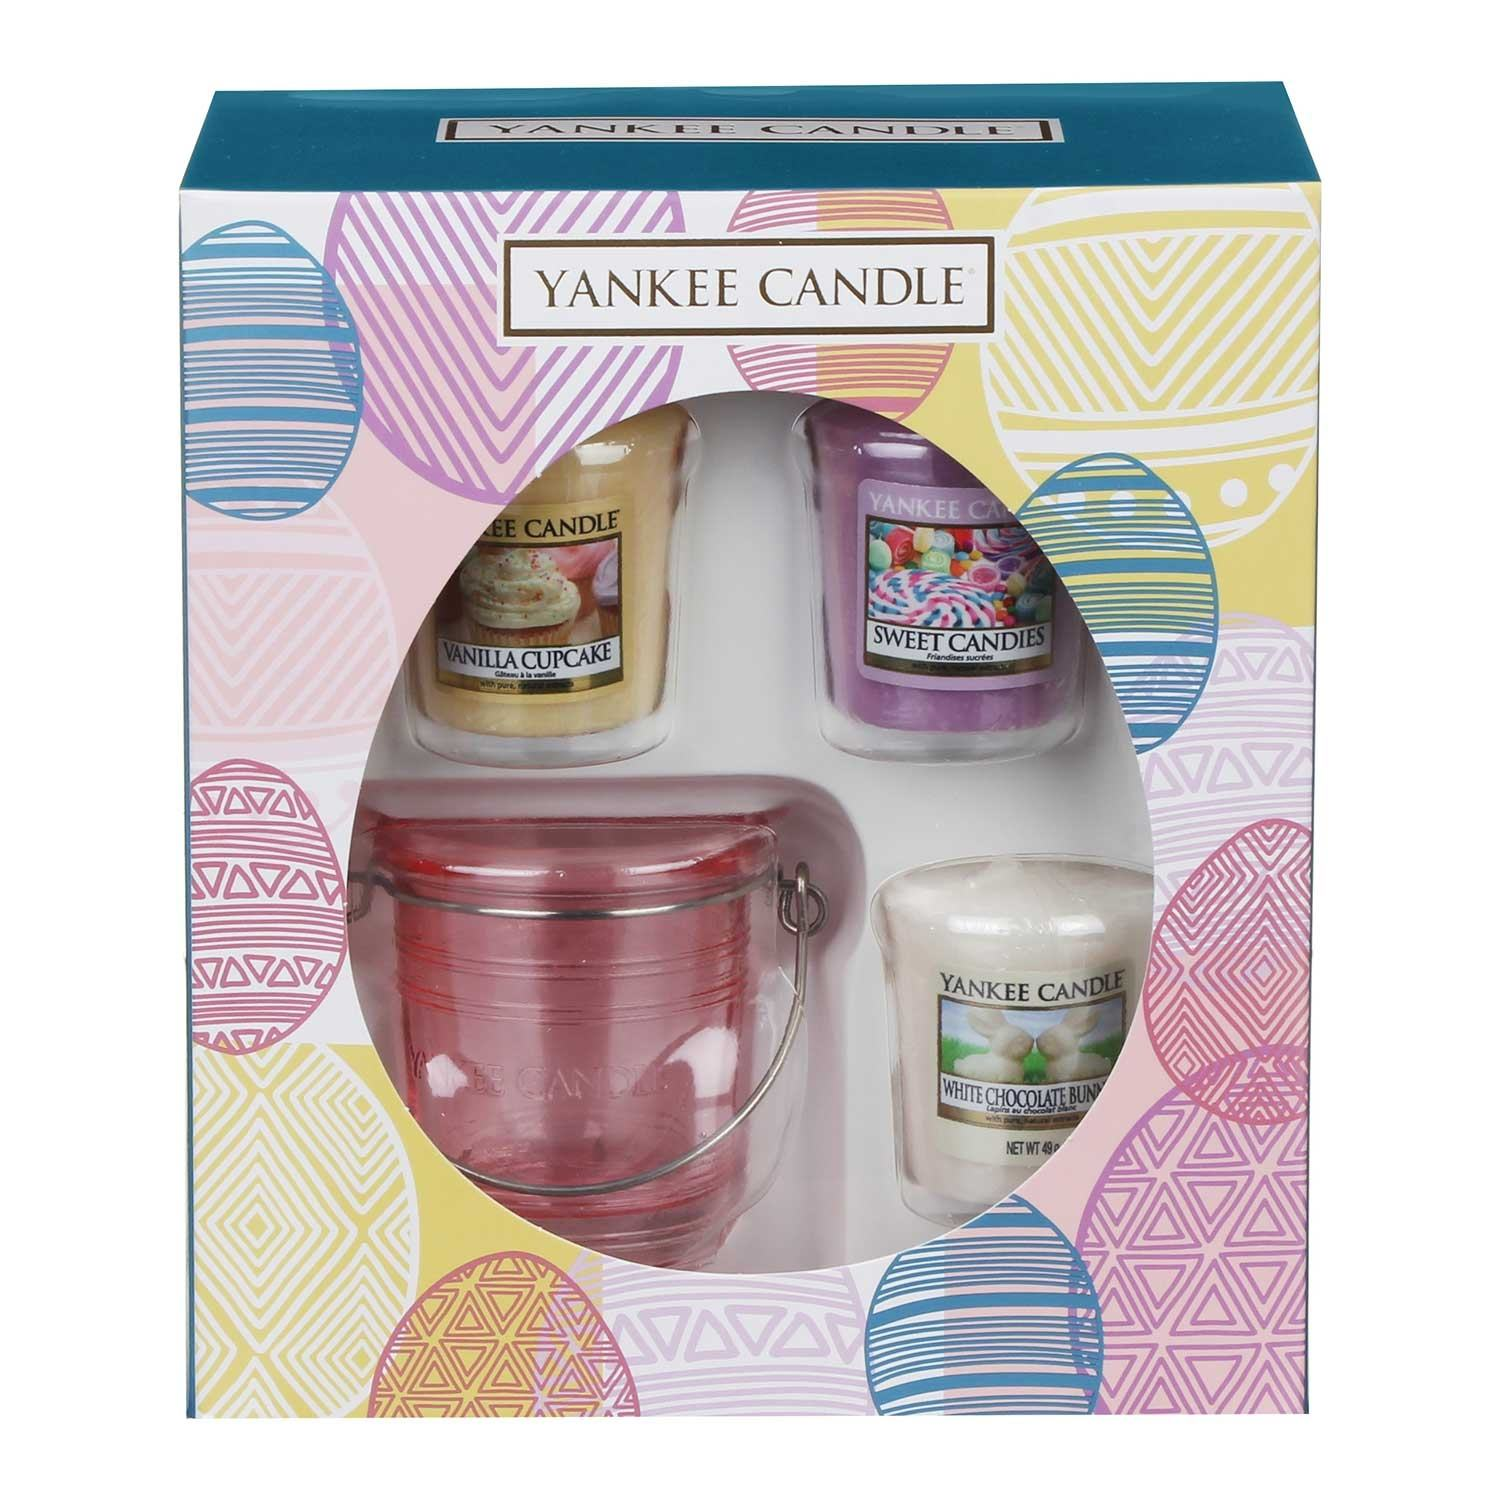 Yankee Candle Three Votive Candle & Holder Easter 2018 Limited Edition Gift Set